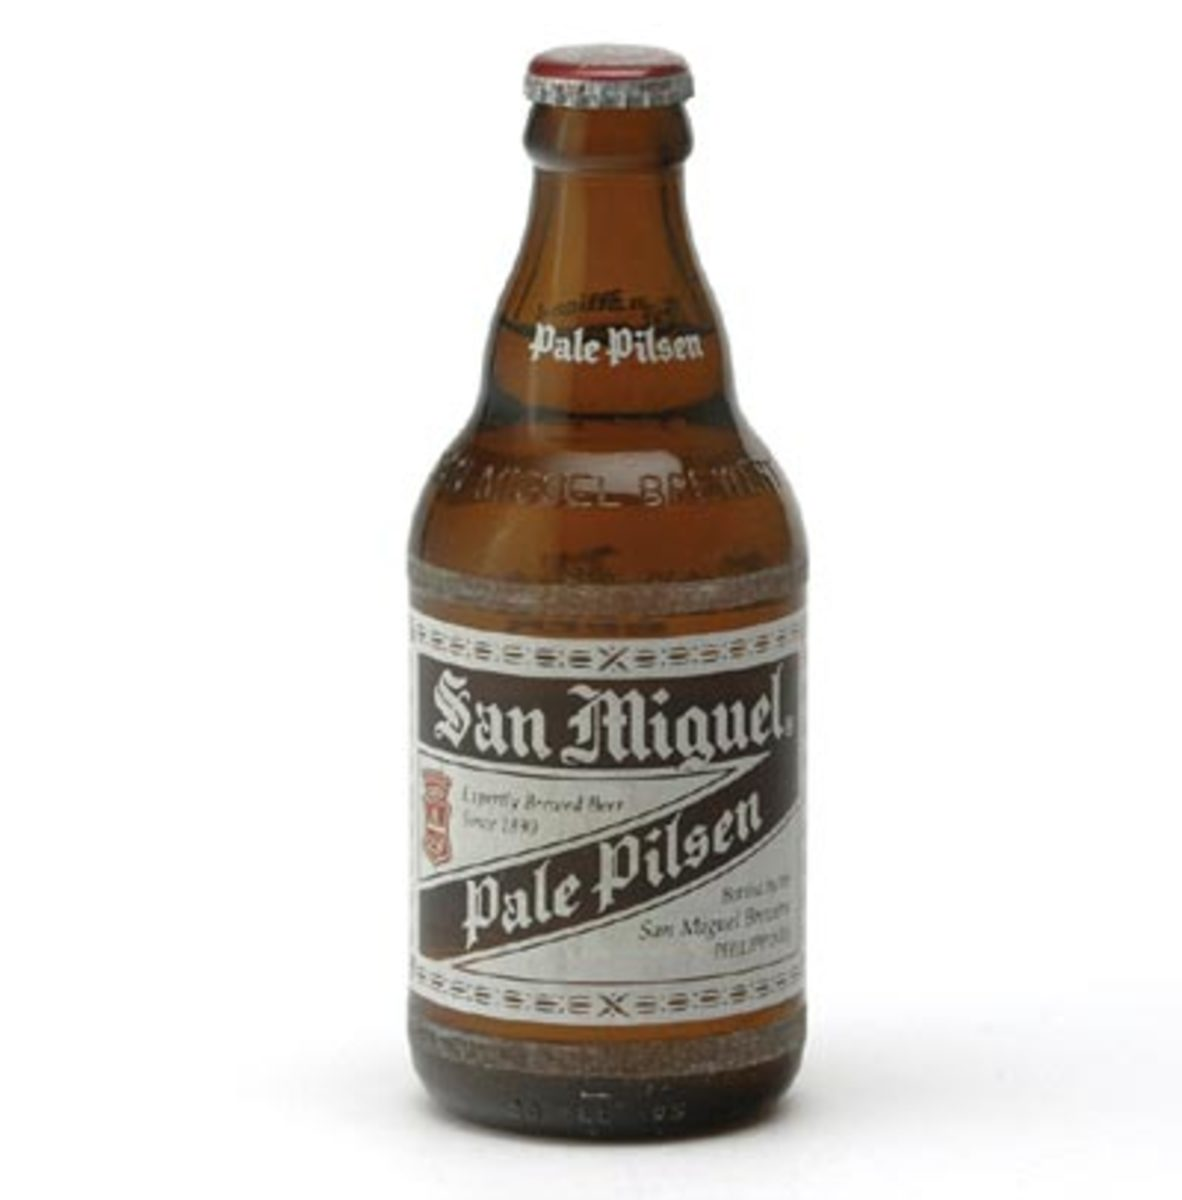 San Miguel Beer, Filipino beer